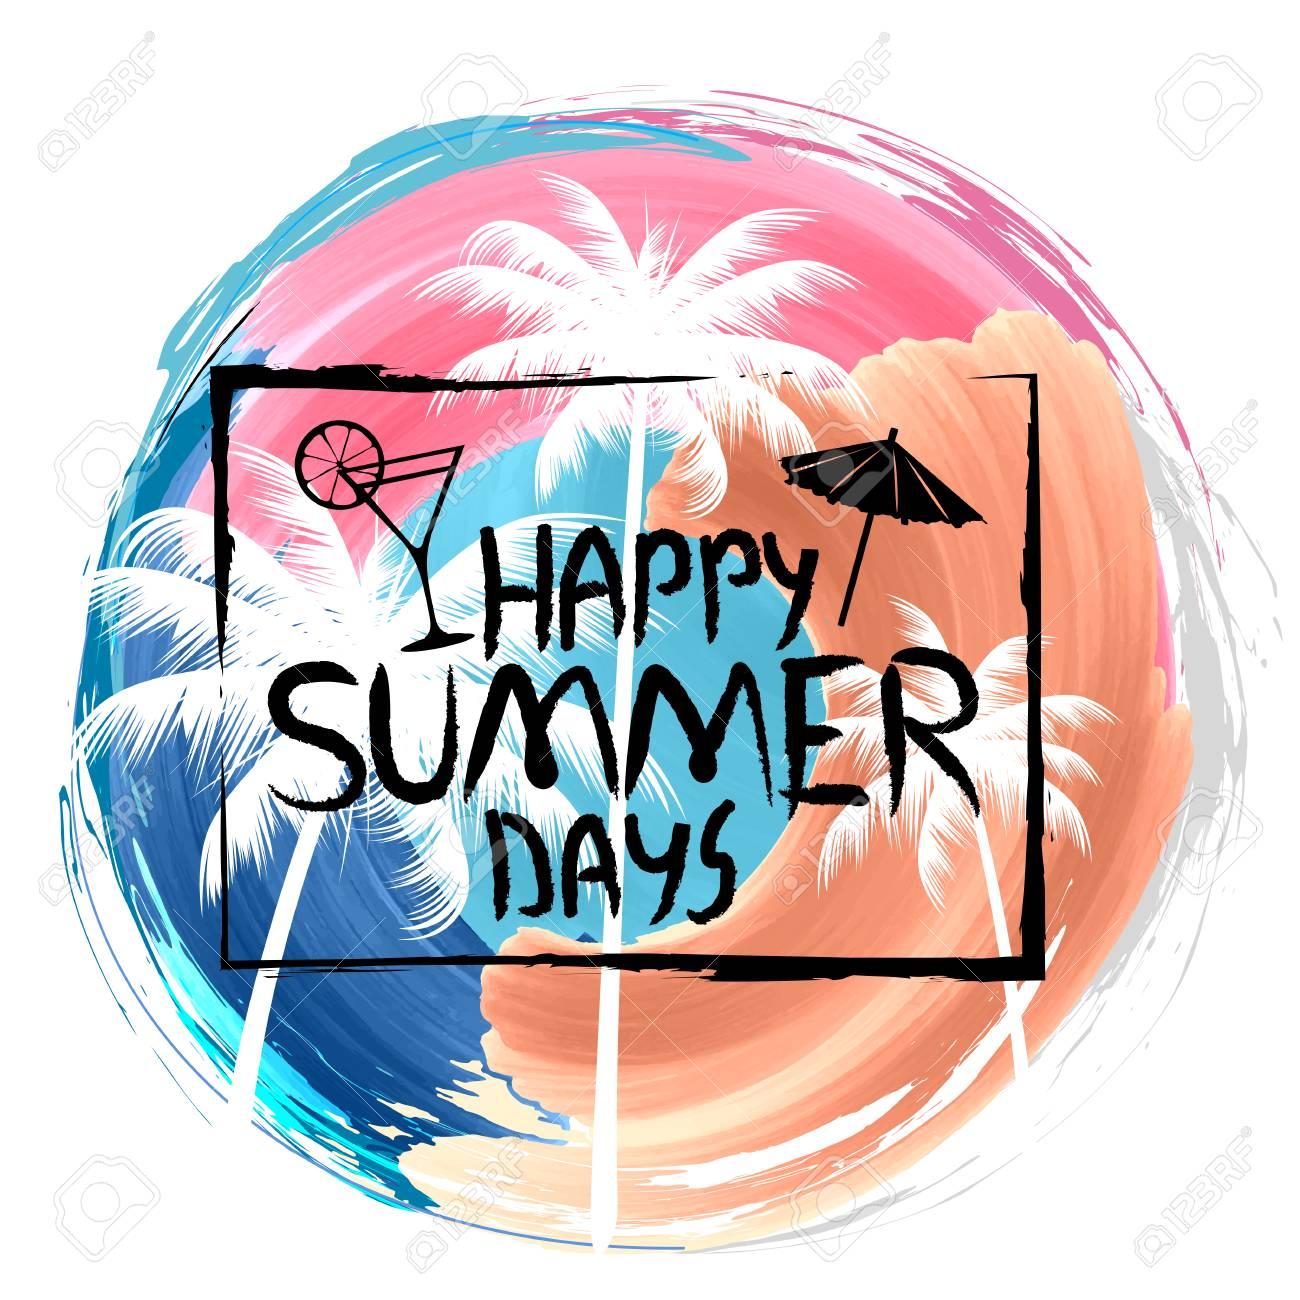 Happy Summer Days Poster Wallpaper For Fun Party Invitation 1300x1300